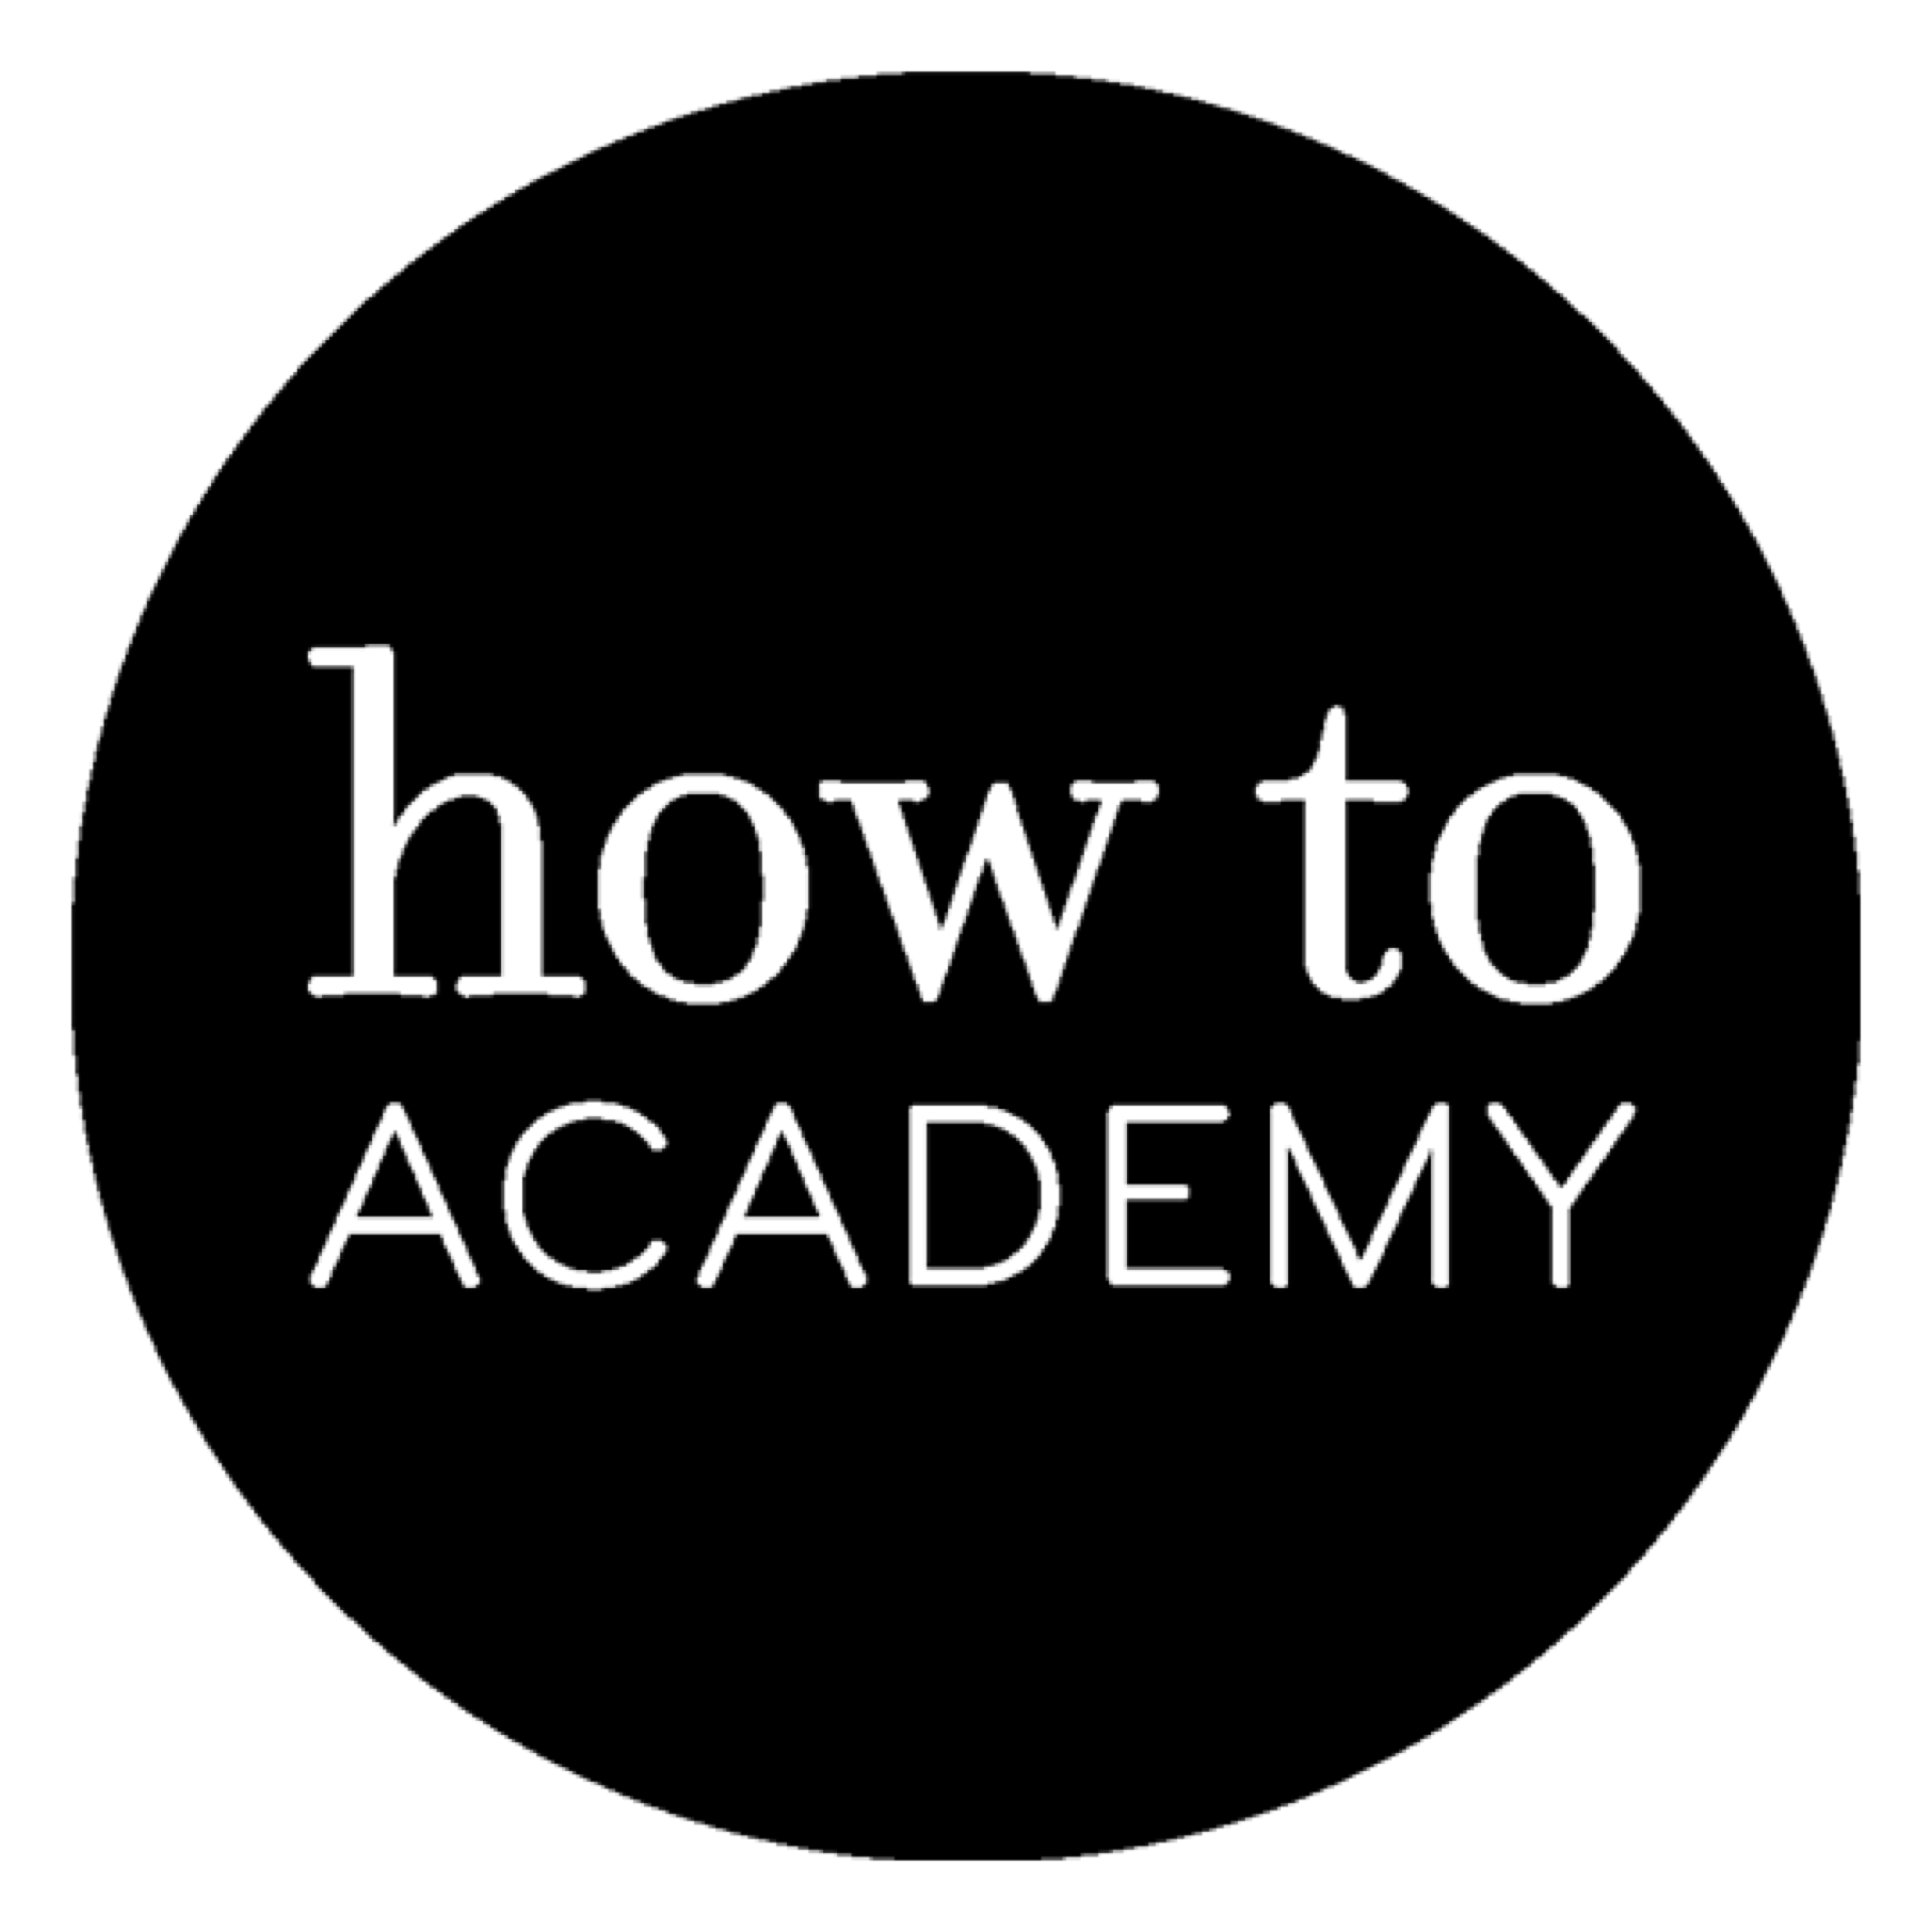 How To Academy